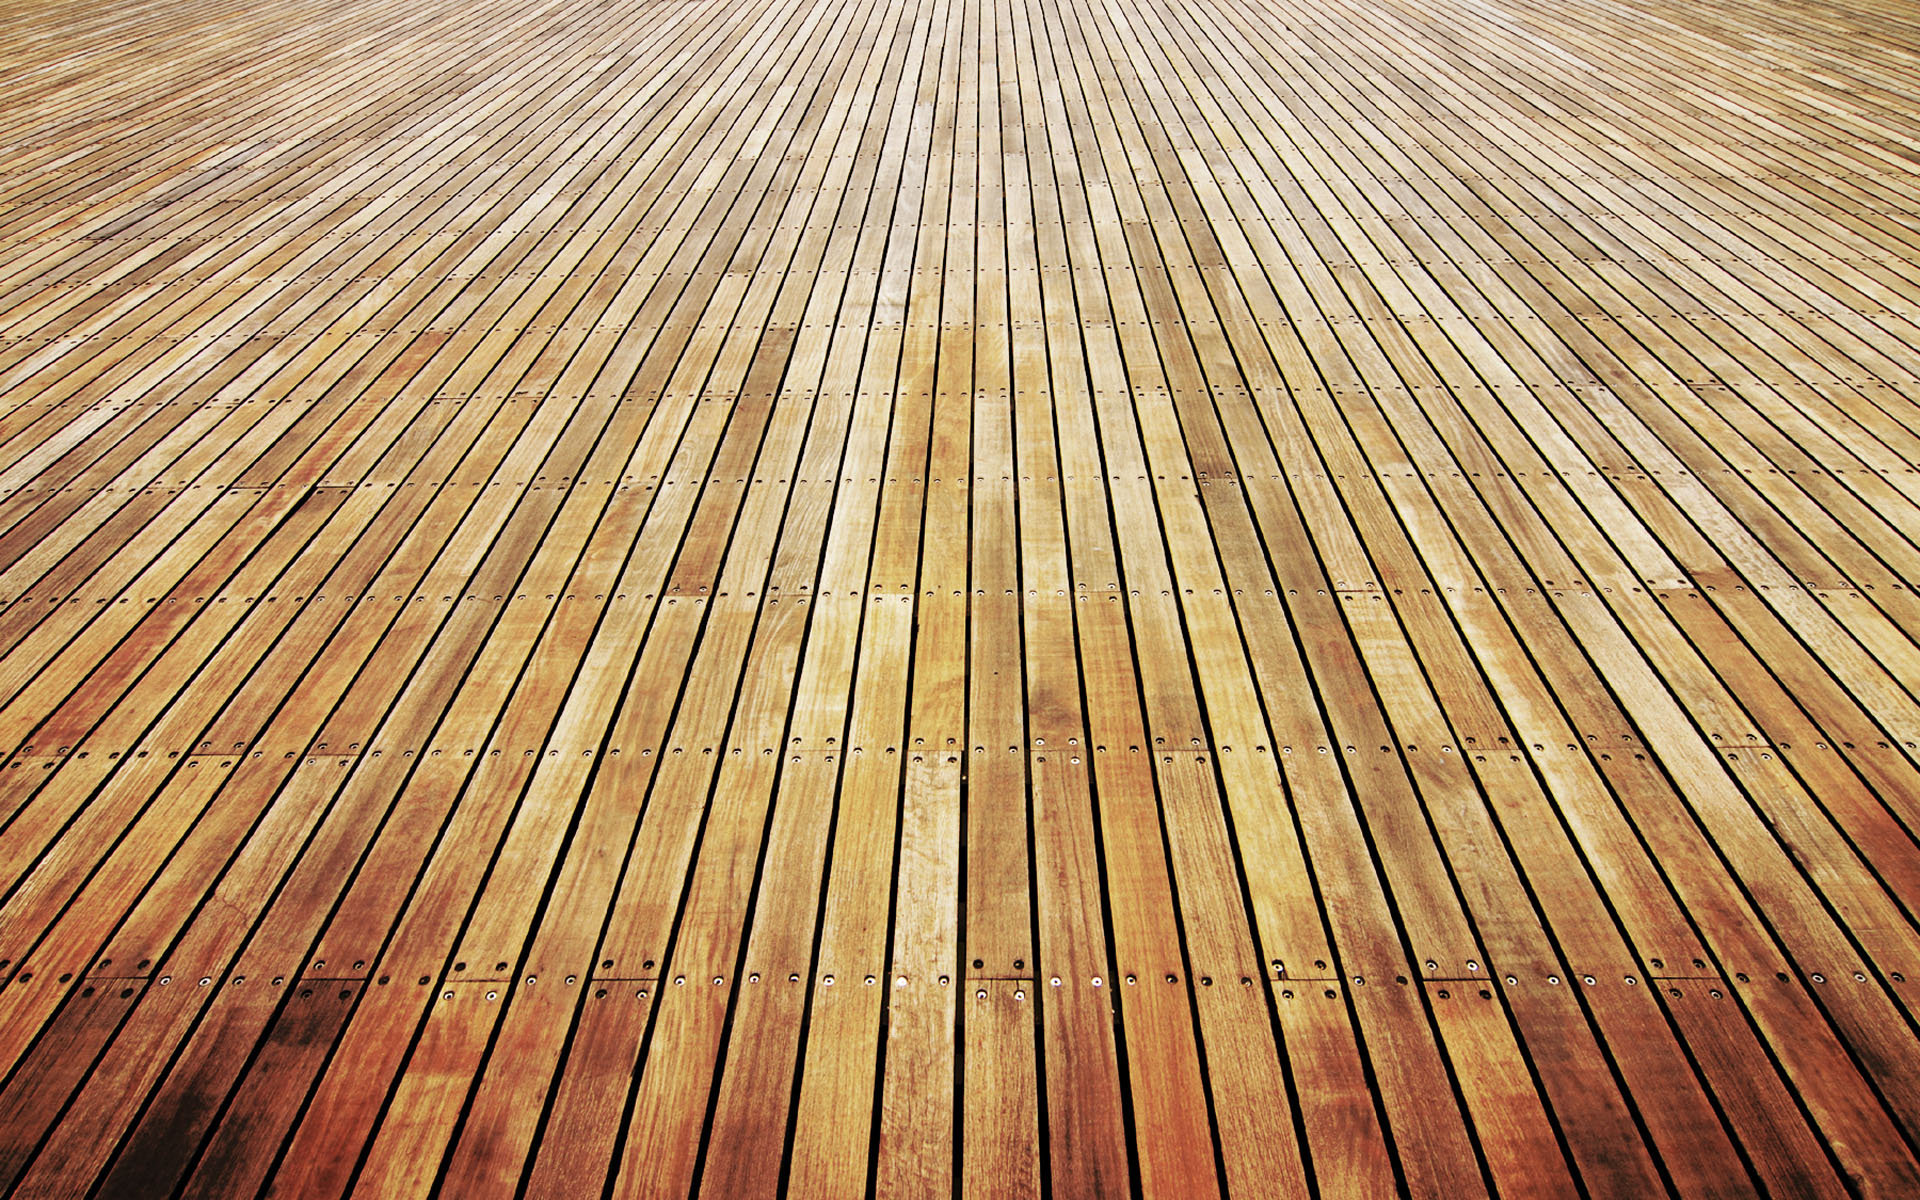 wood floor hd wallpaper wood floor hd wallpaper independent 1920x1200